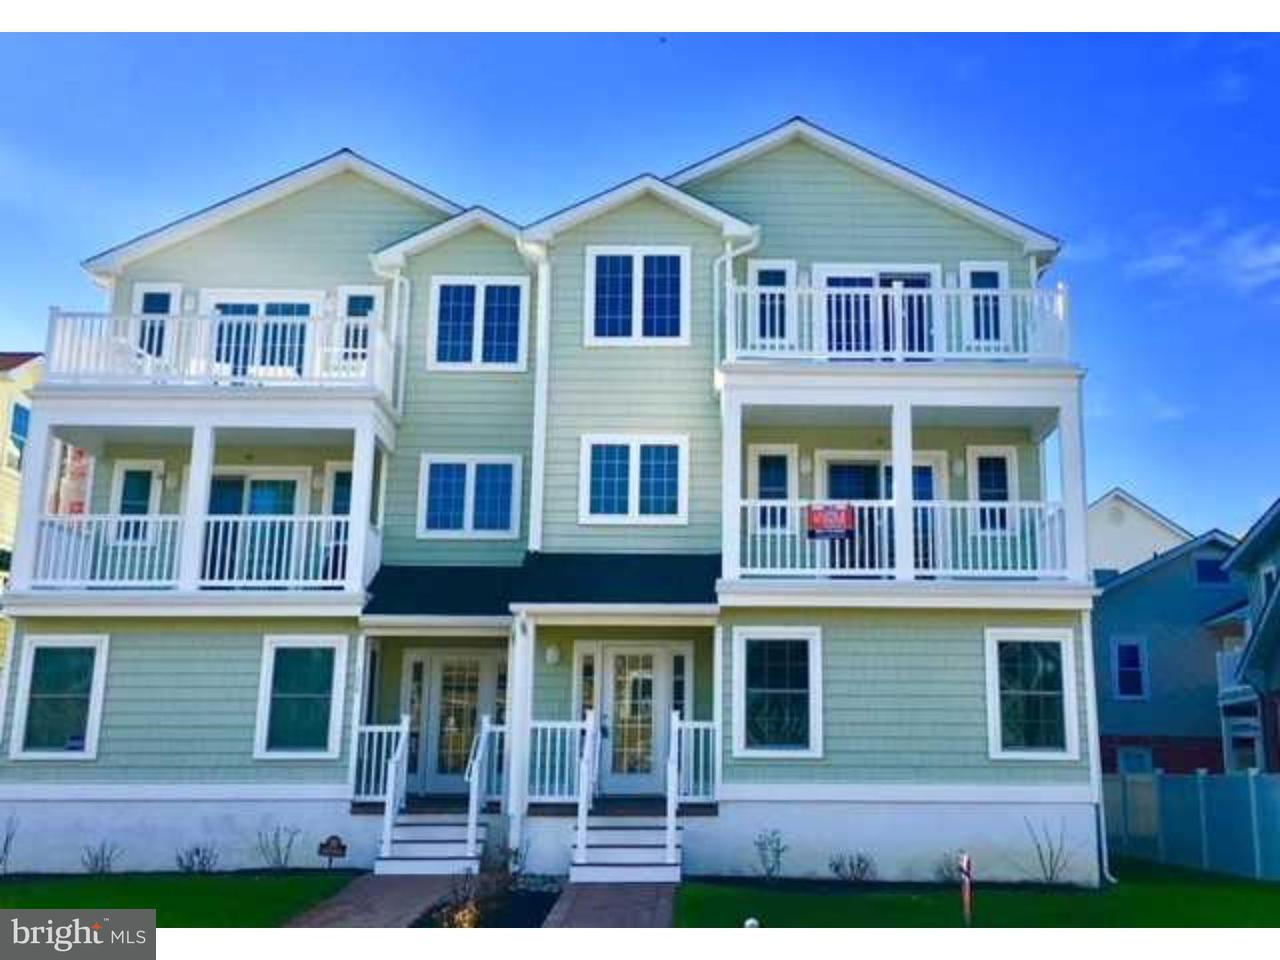 Single Family Home for Sale at 324 E 24TH AVE #102 North Wildwood, New Jersey 08260 United States